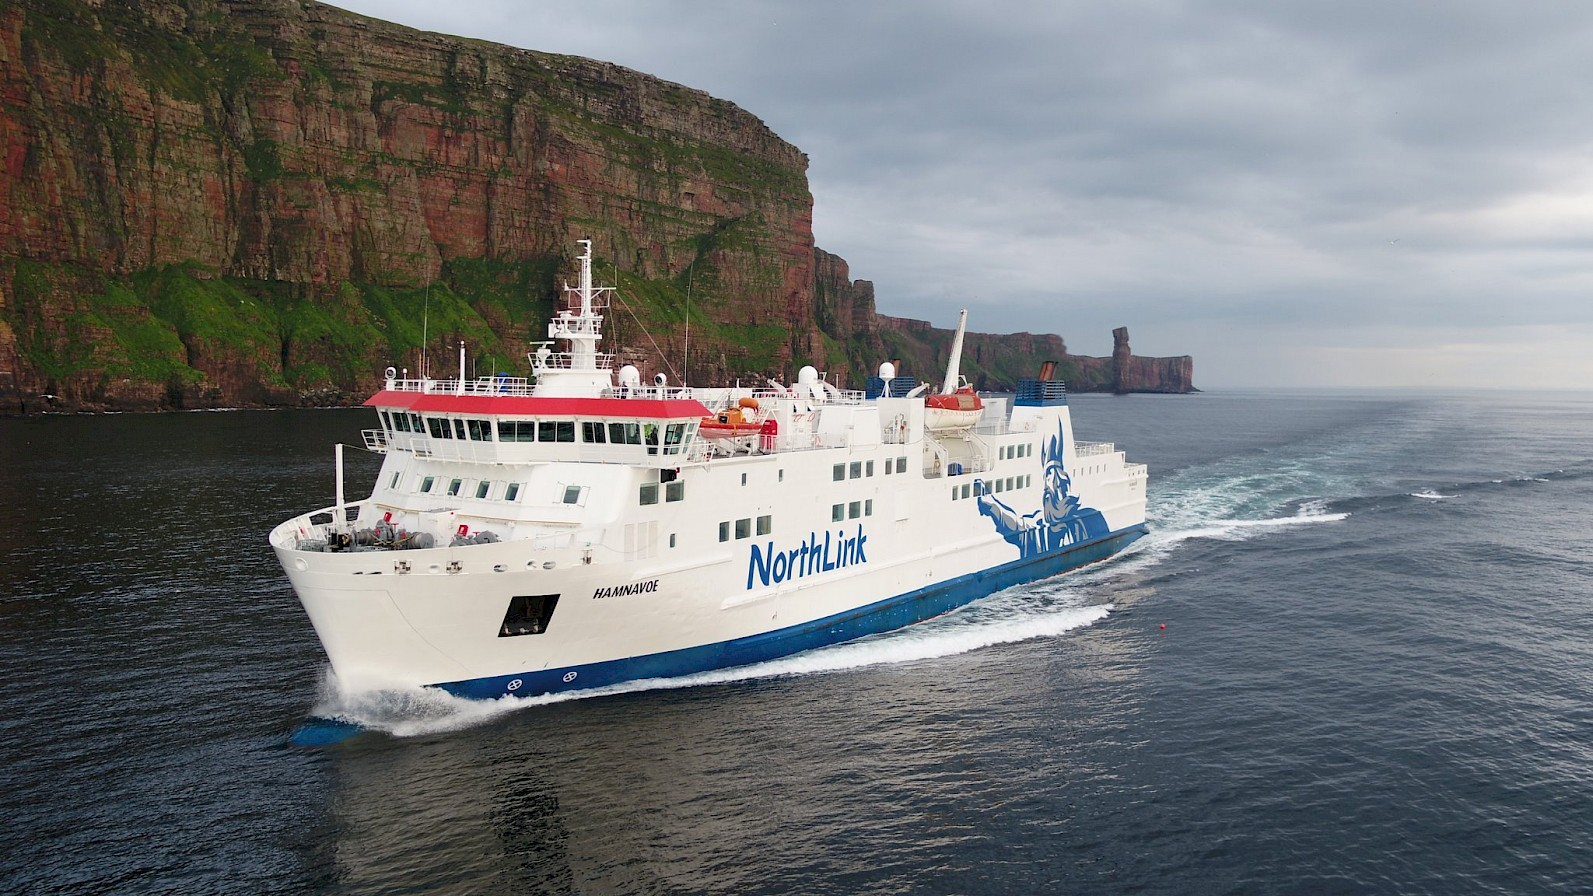 NorthLink Ferries vessel 'Hamnavoe' sailing past the cliffs of Hoy, Orkney - image by Nick McCaffrey